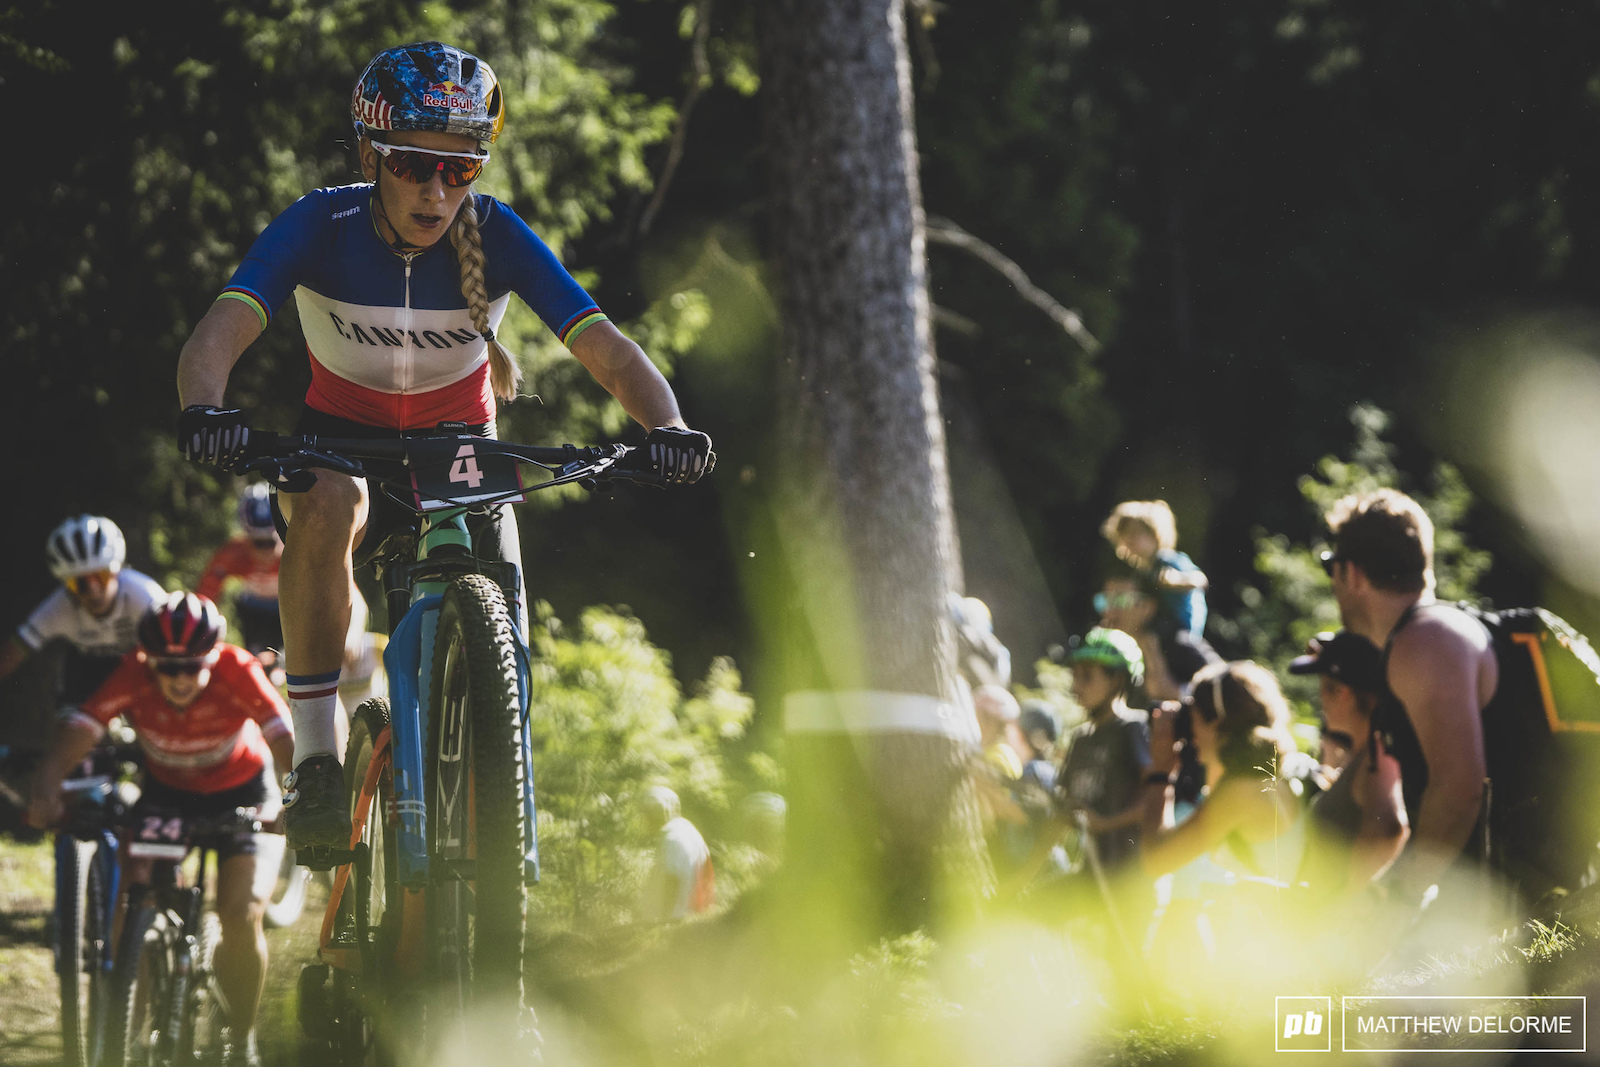 Pauline Ferrand Prevot has been back on form and takes another win.